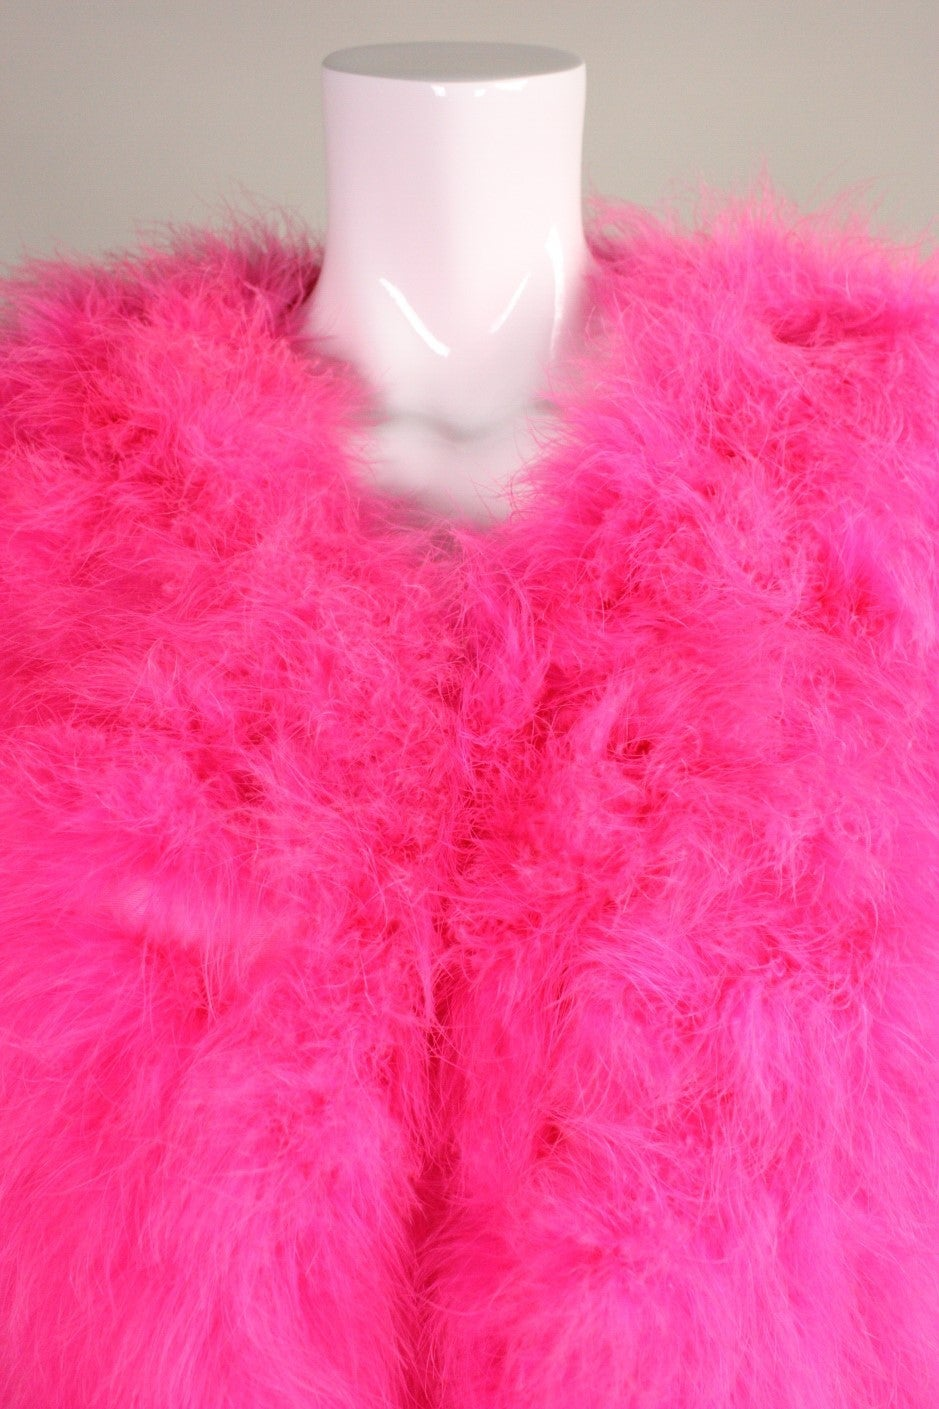 Full-Length Hot Pink Marabou Coat with Ostrich Feather Trim For Sale 1